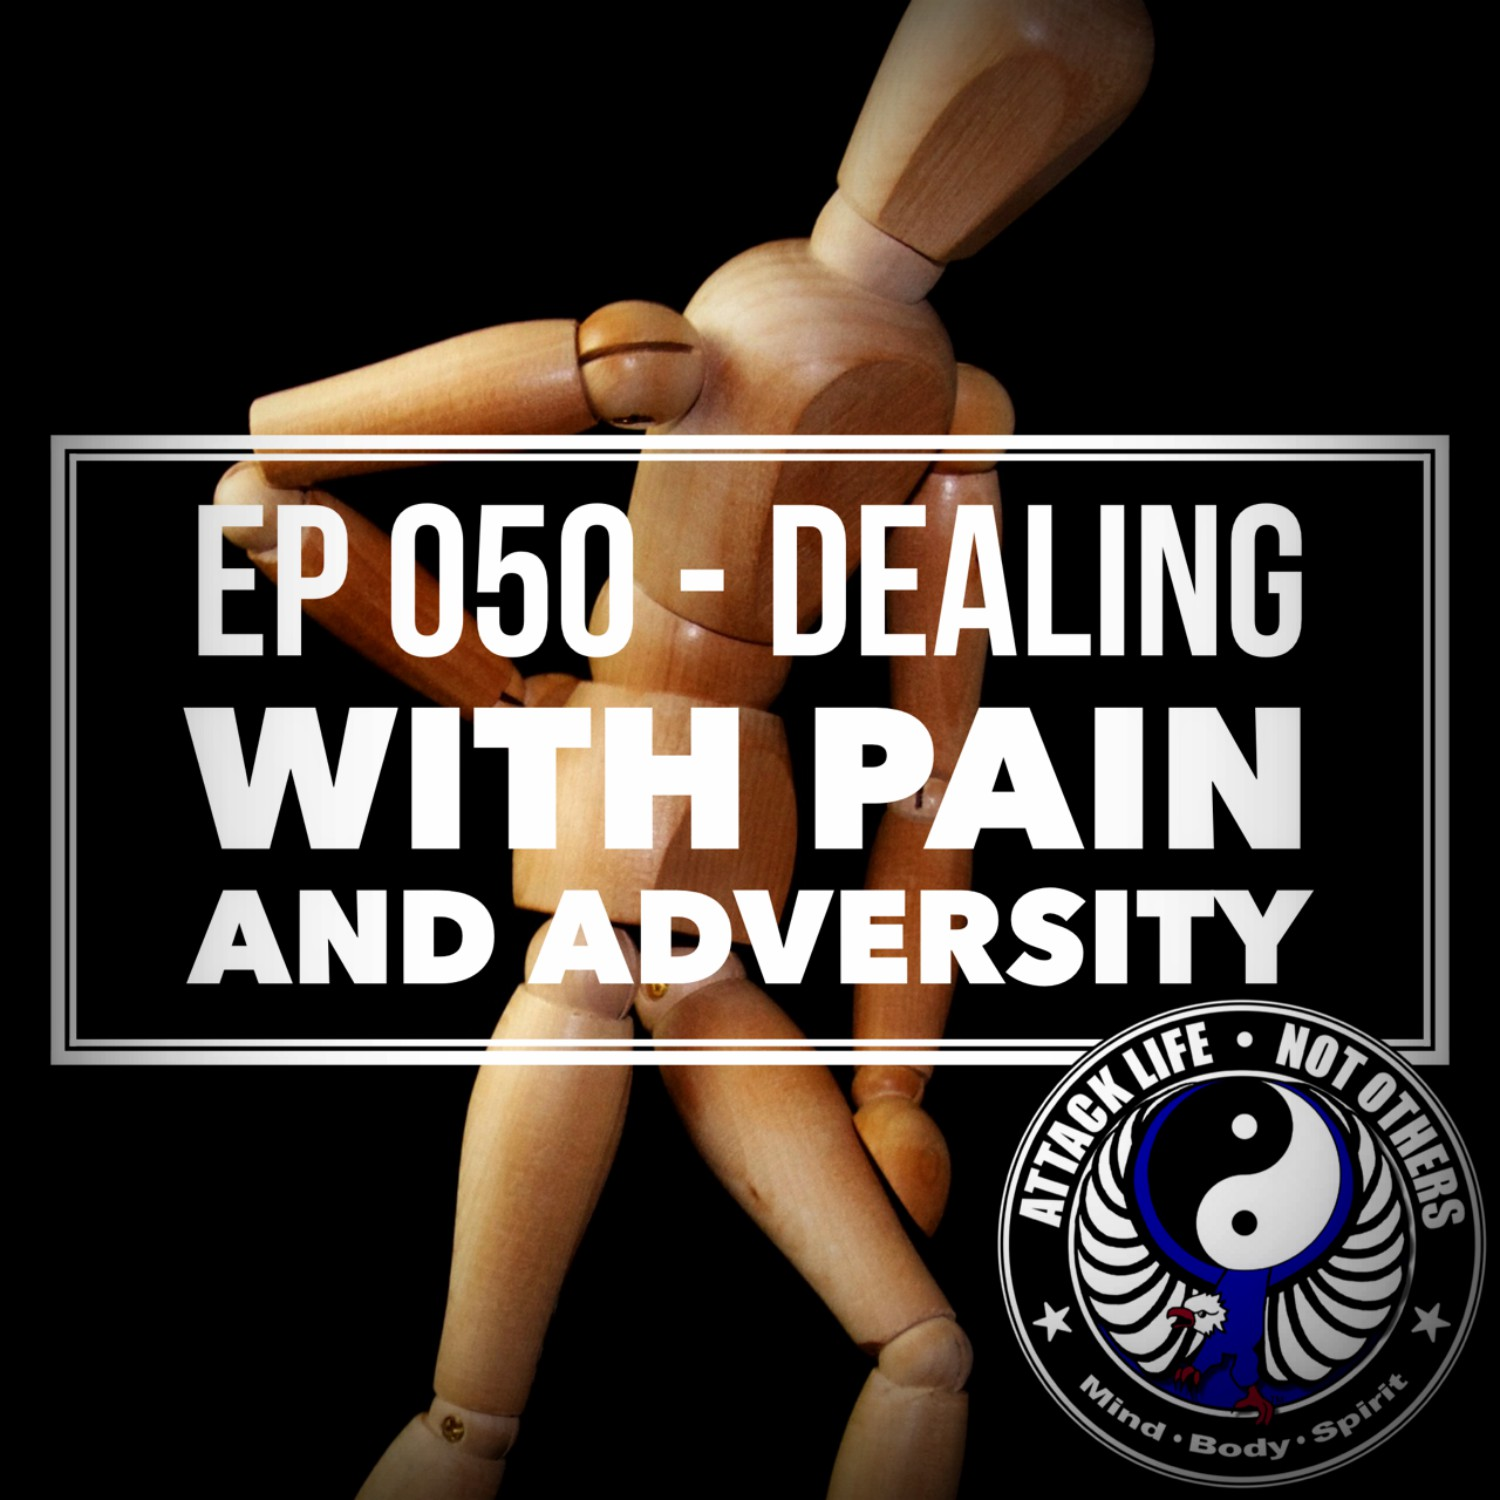 Artwork for Ep 050 - Dealing With Pain and Adversity